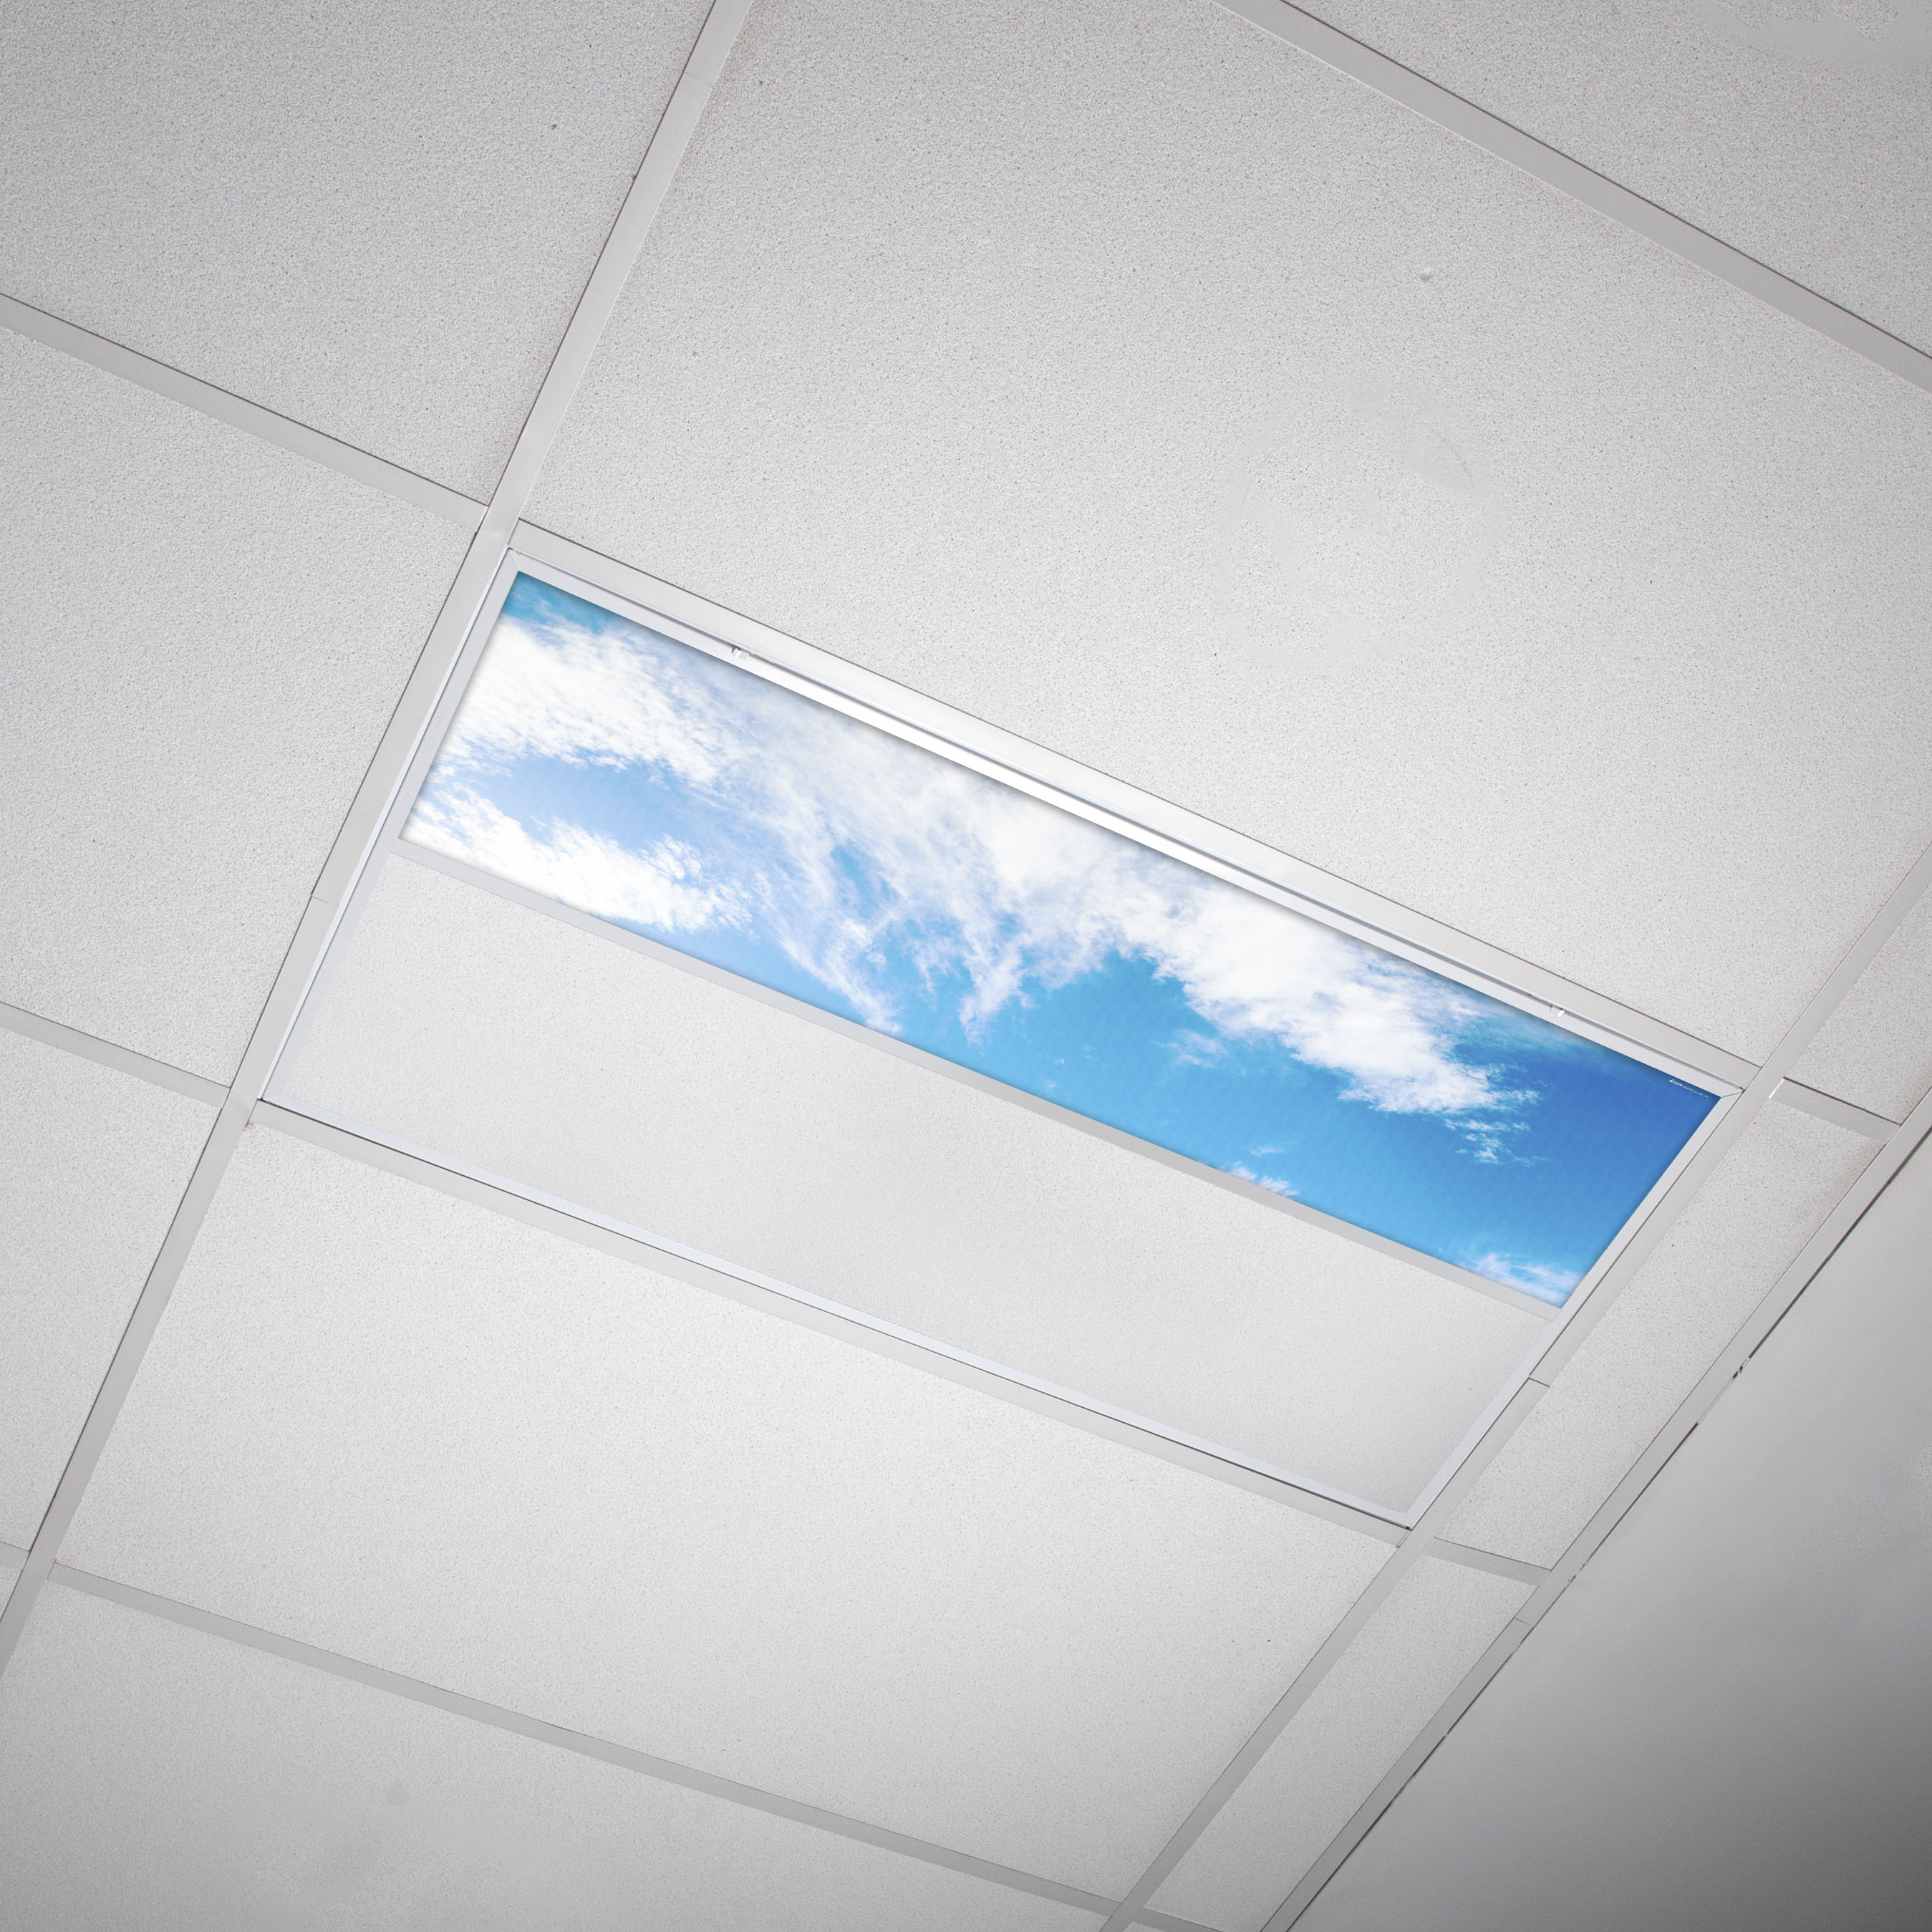 Octo Lights Fluorescent Light Covers 1x4 Flexible Ceiling Light Diffuser Panels Decorative Clouds For Classrooms And Offices 004 Walmart Com Walmart Com